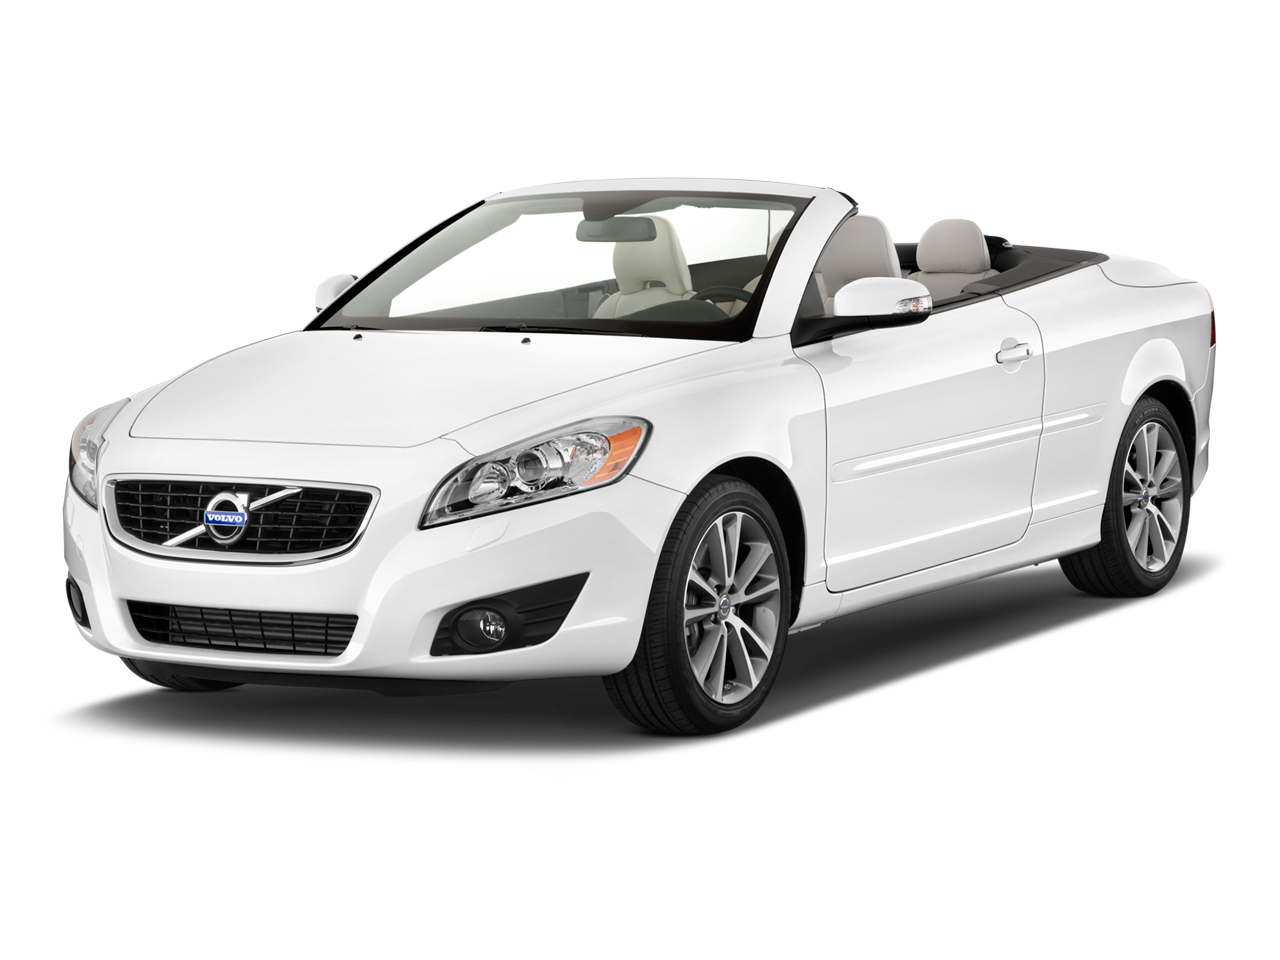 Clipart cars headlight. Volvo png image purepng